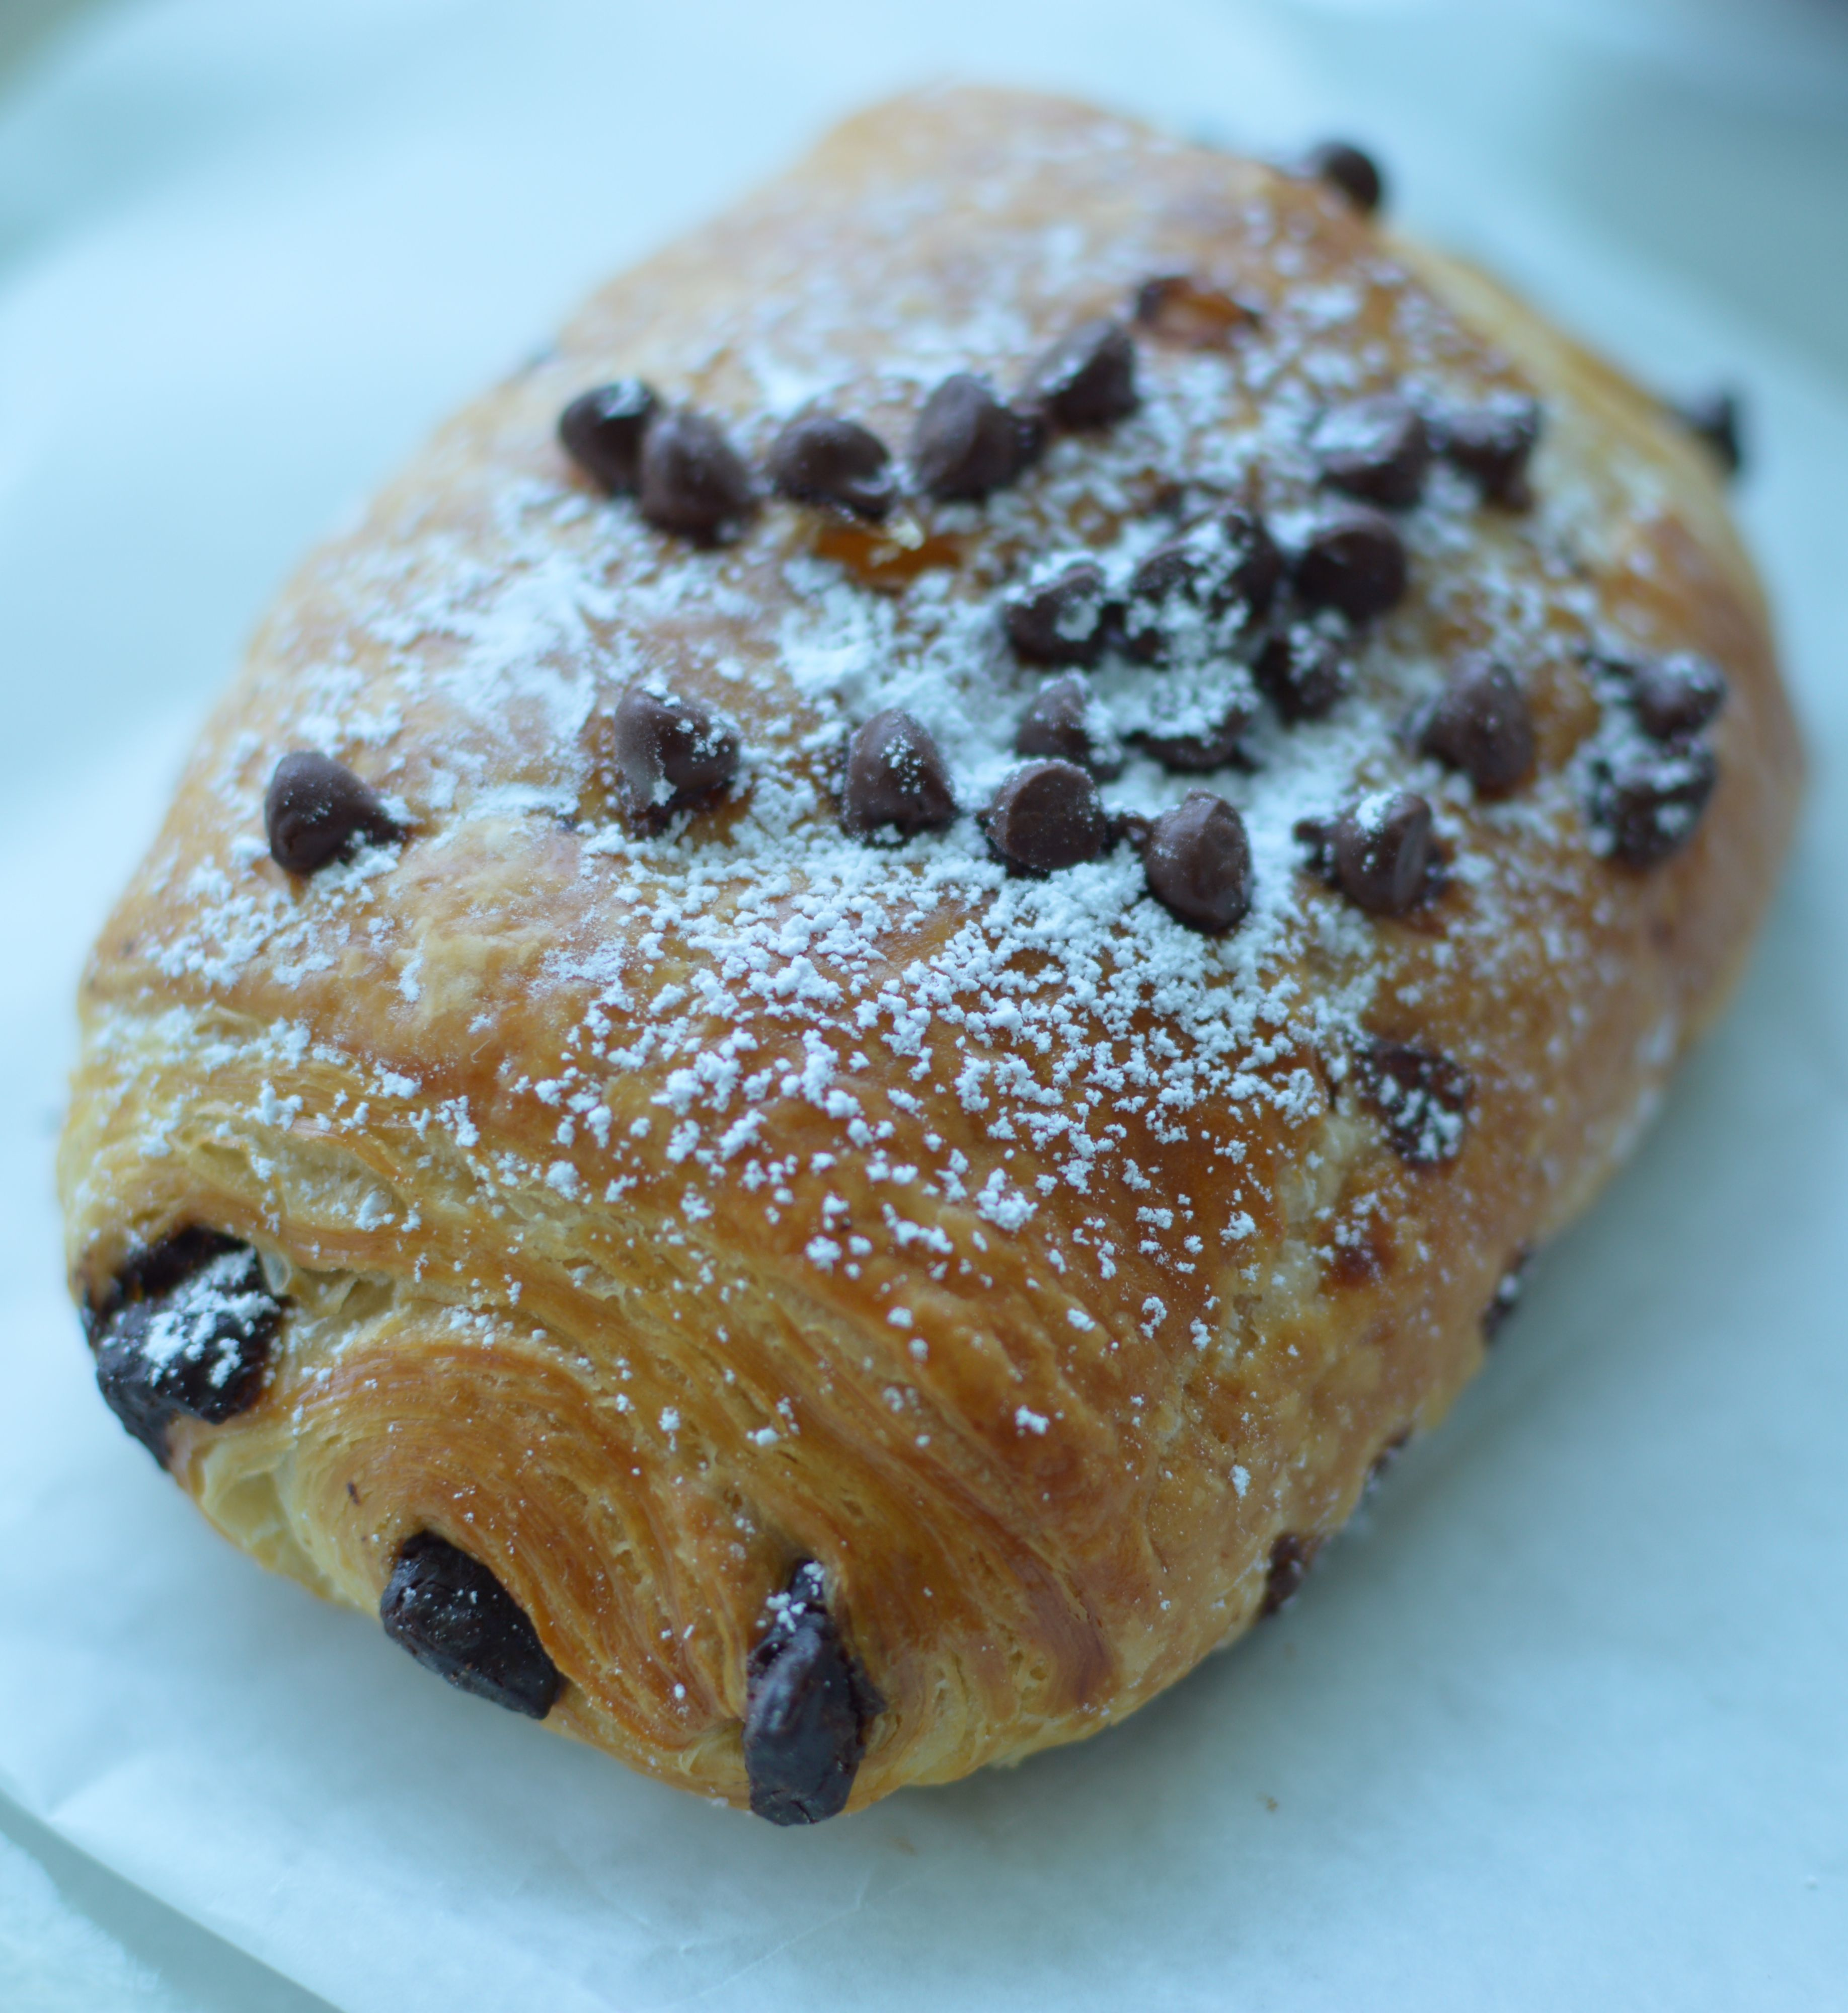 Chocolate Croissant from Landscape of Flavors at Art of Animation ...